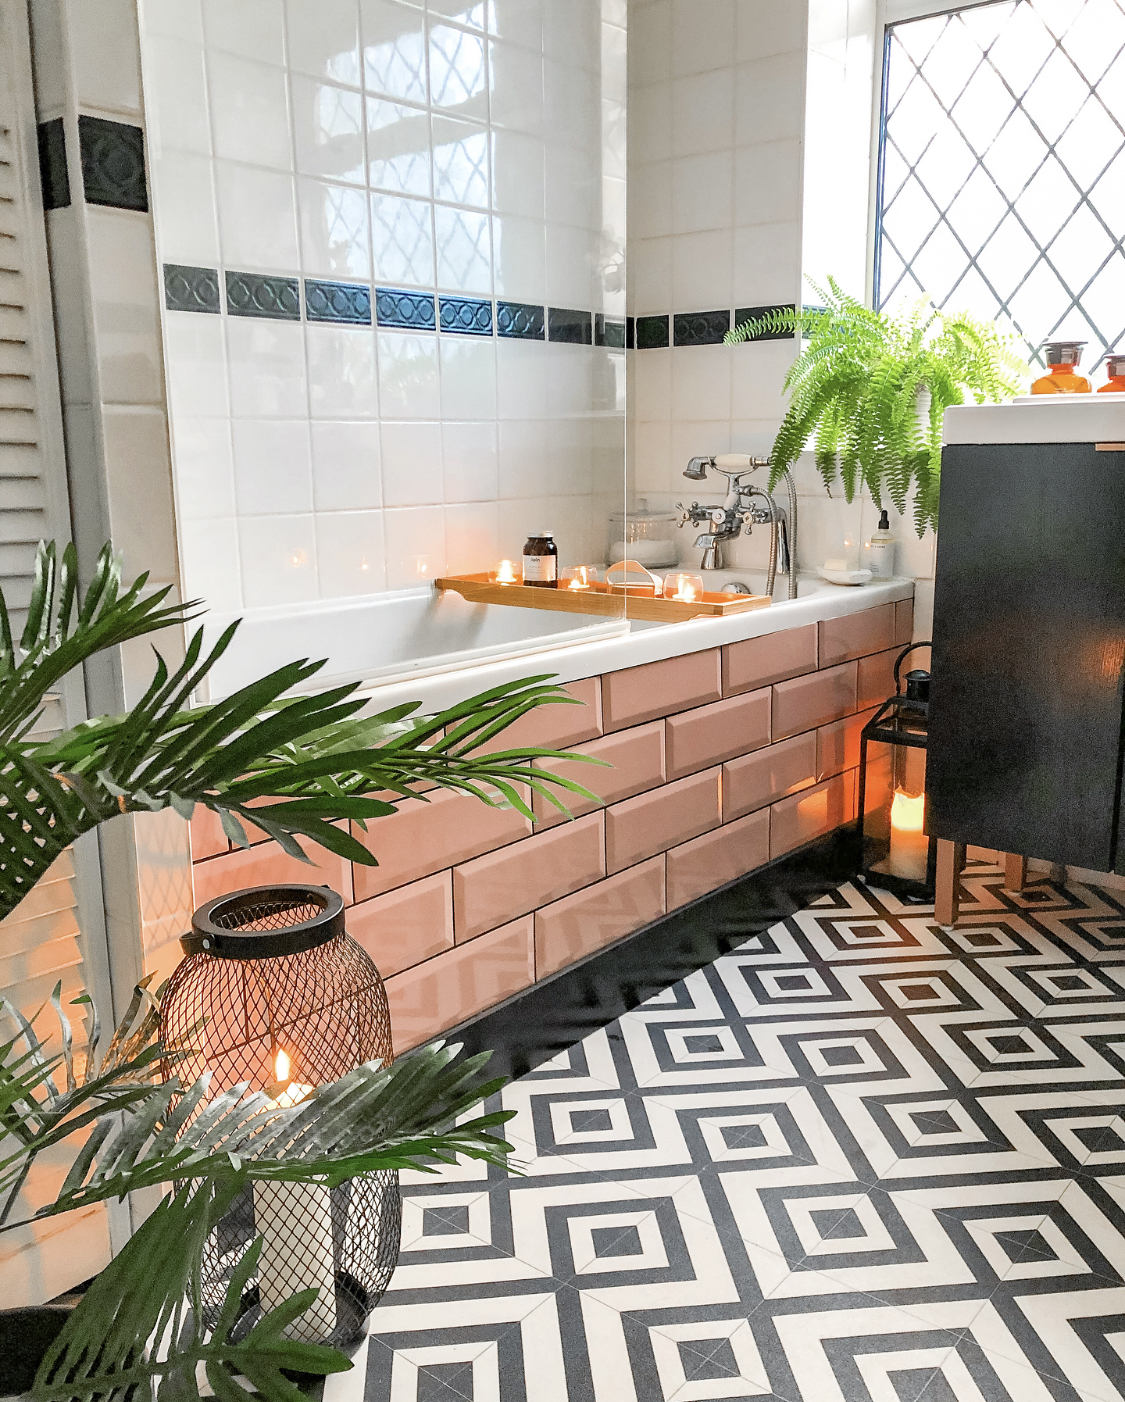 Tiled bath panel in blush pink metro tiles